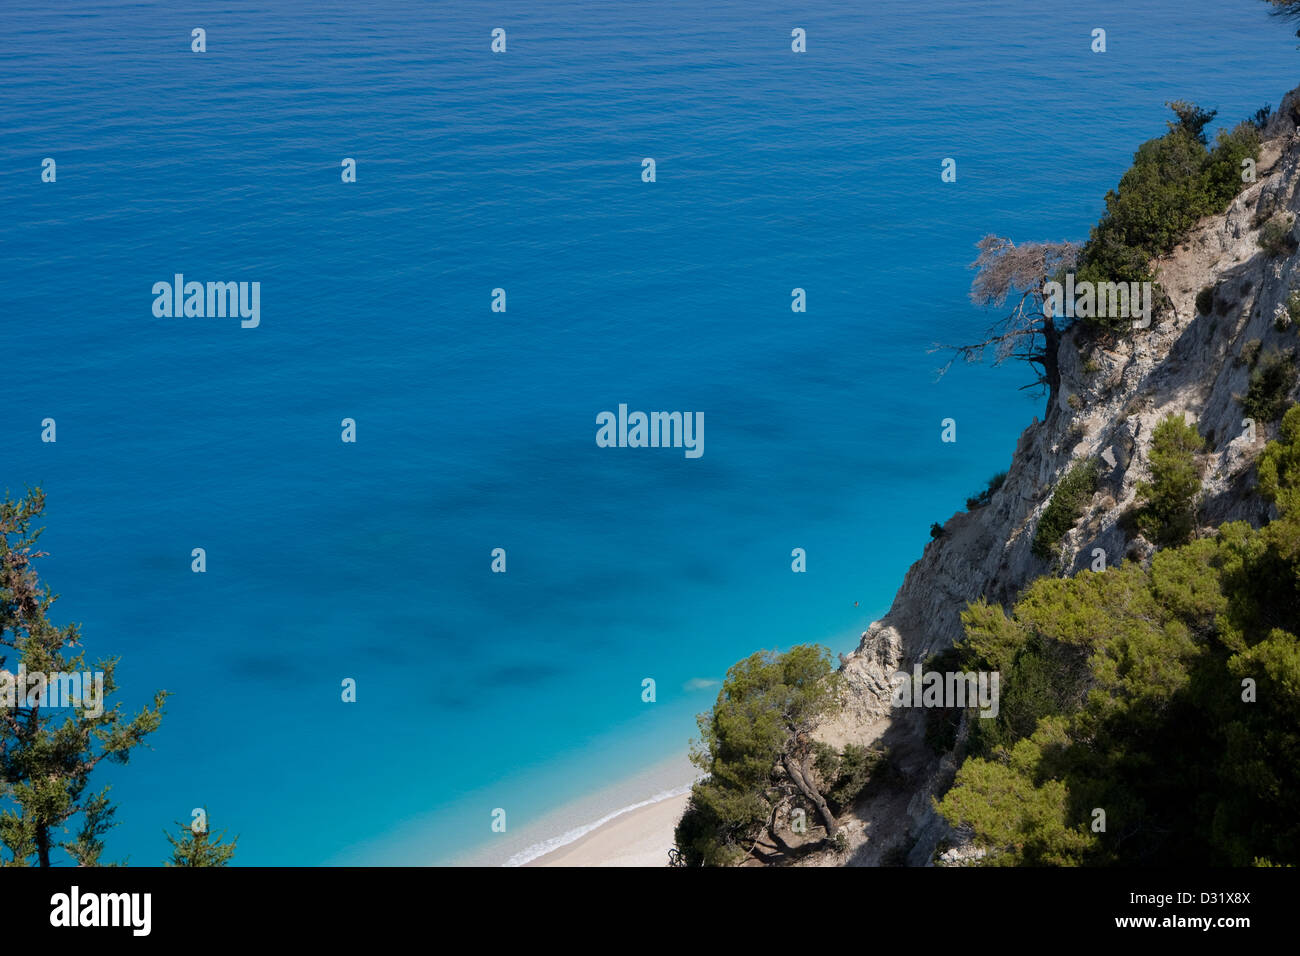 The steep cliffs over the turquoise waters of Egremni; Lefkada, Ionian islands. Greece. - Stock Image